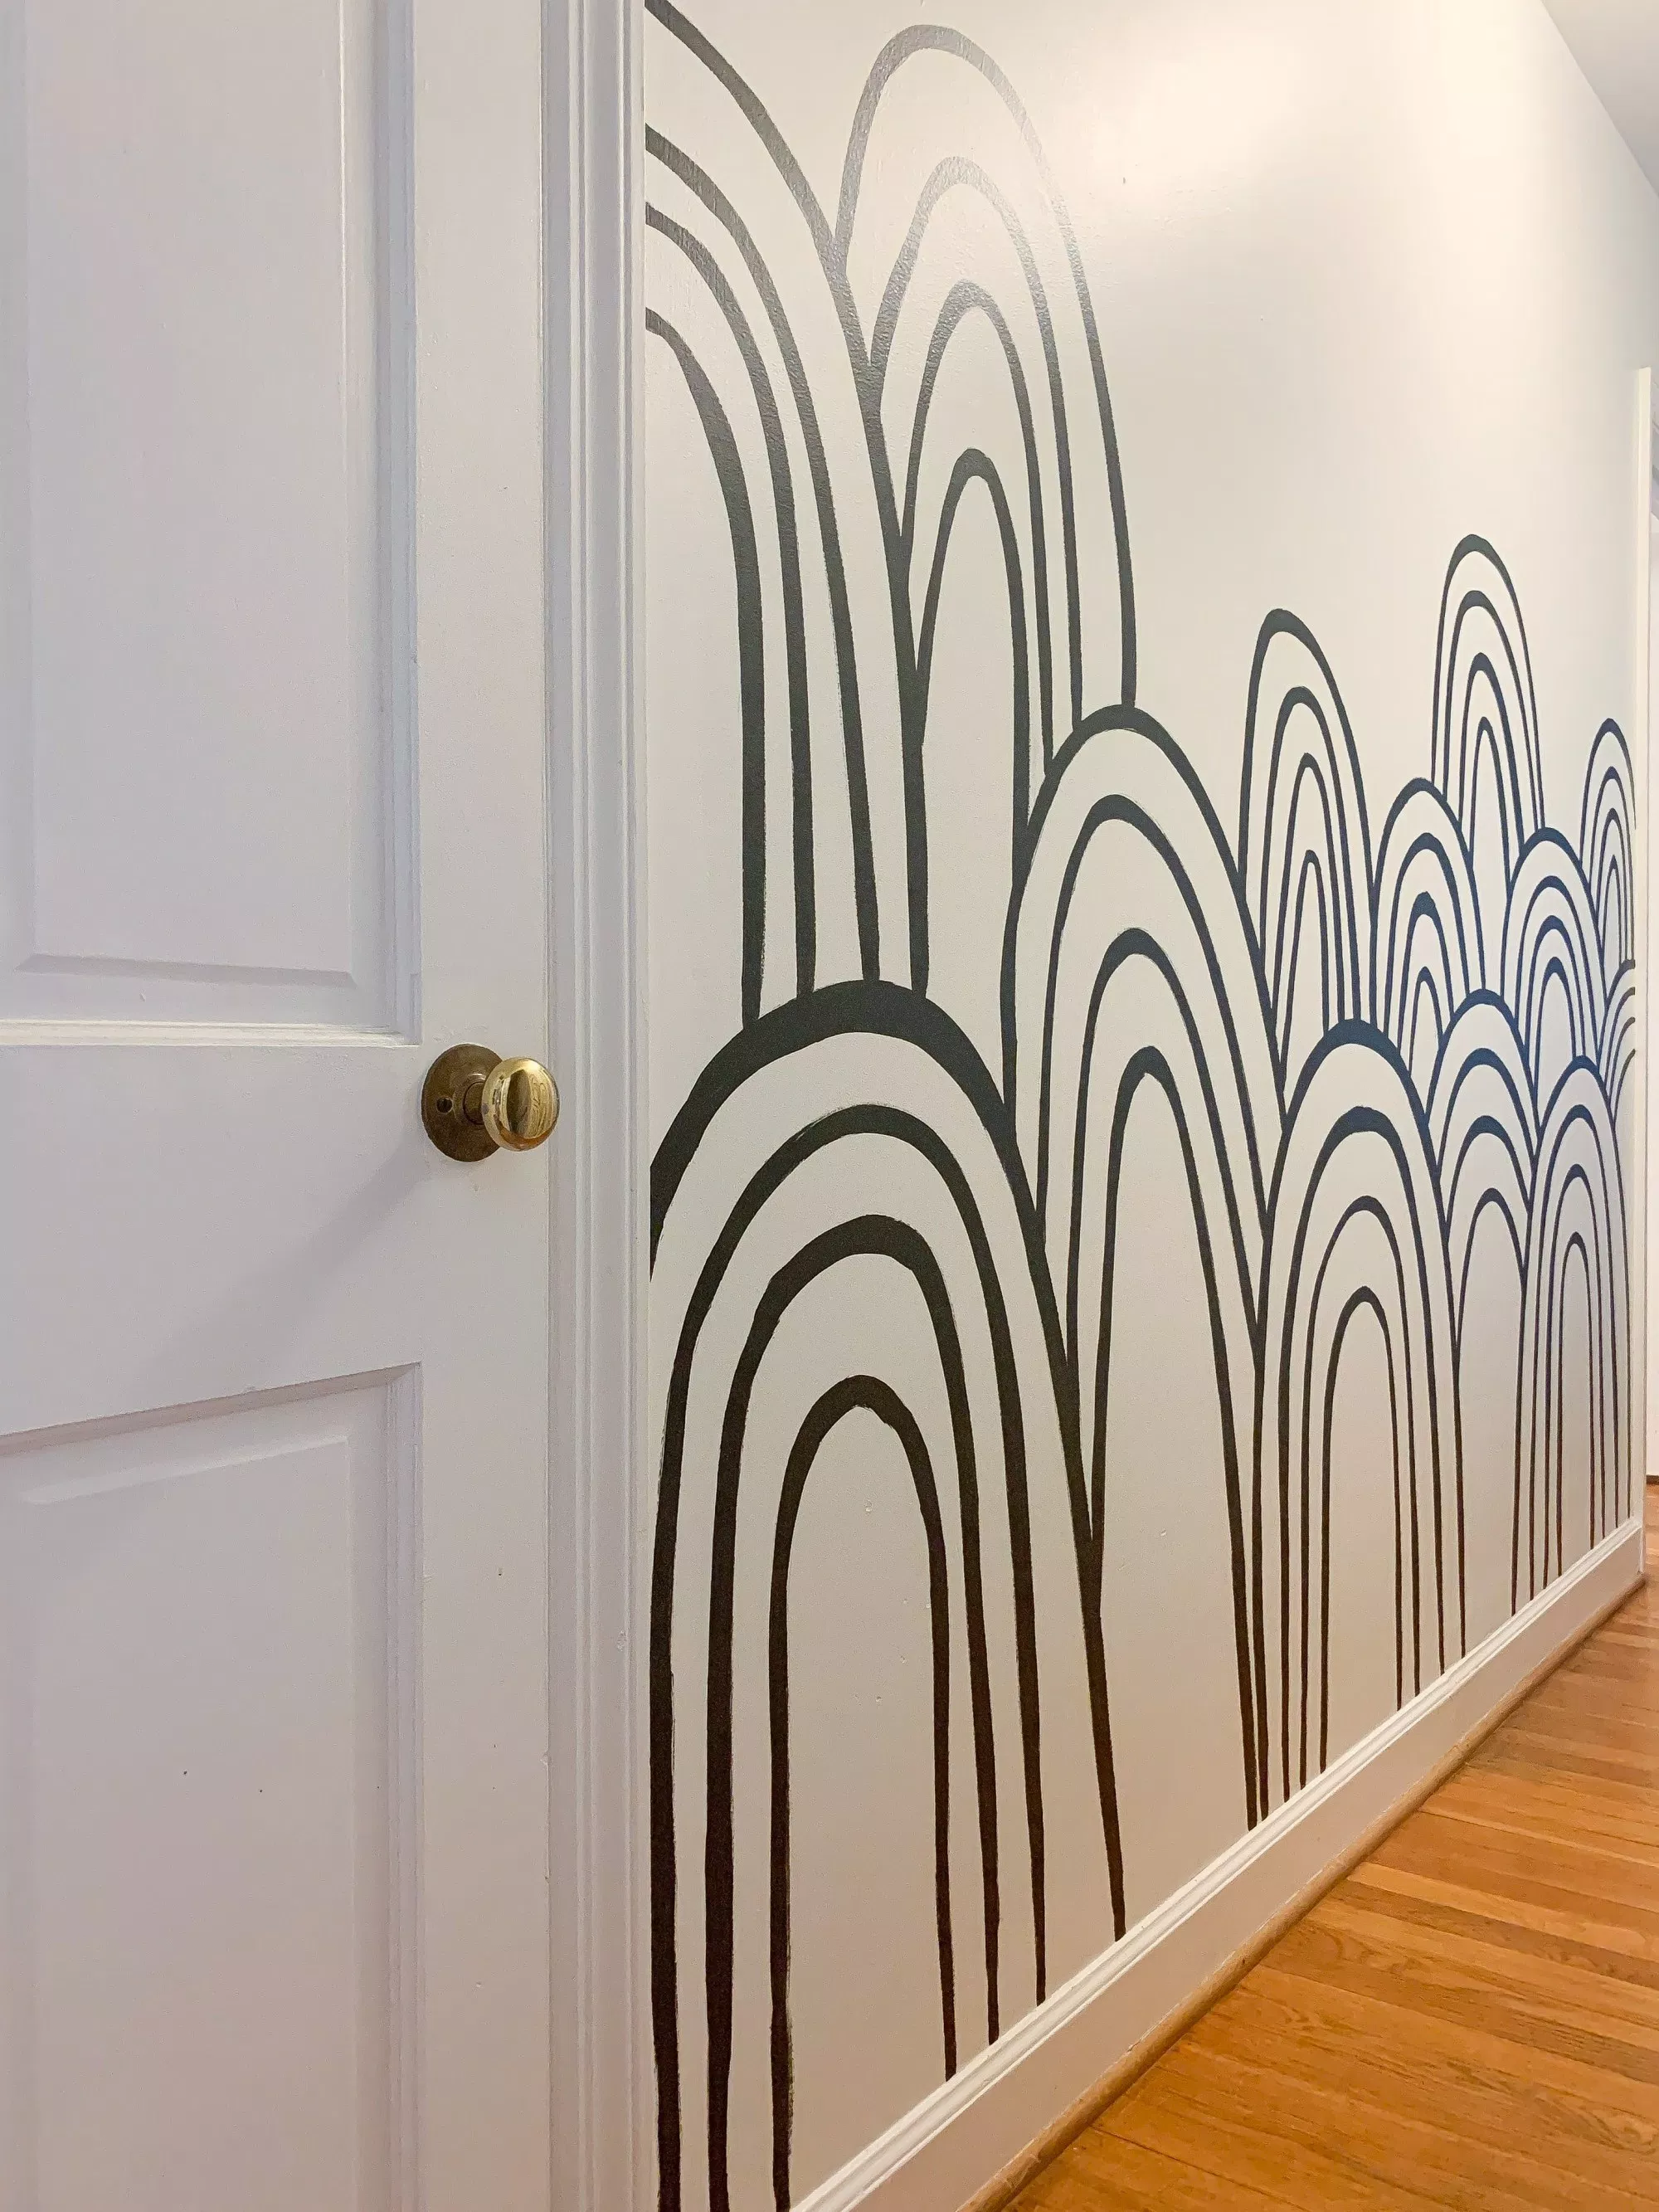 Diy Hand Painted Black And White Rainbow Mural Cassie Bustamante In 2020 Home Decor Wall Murals Diy Accent Wall Paint